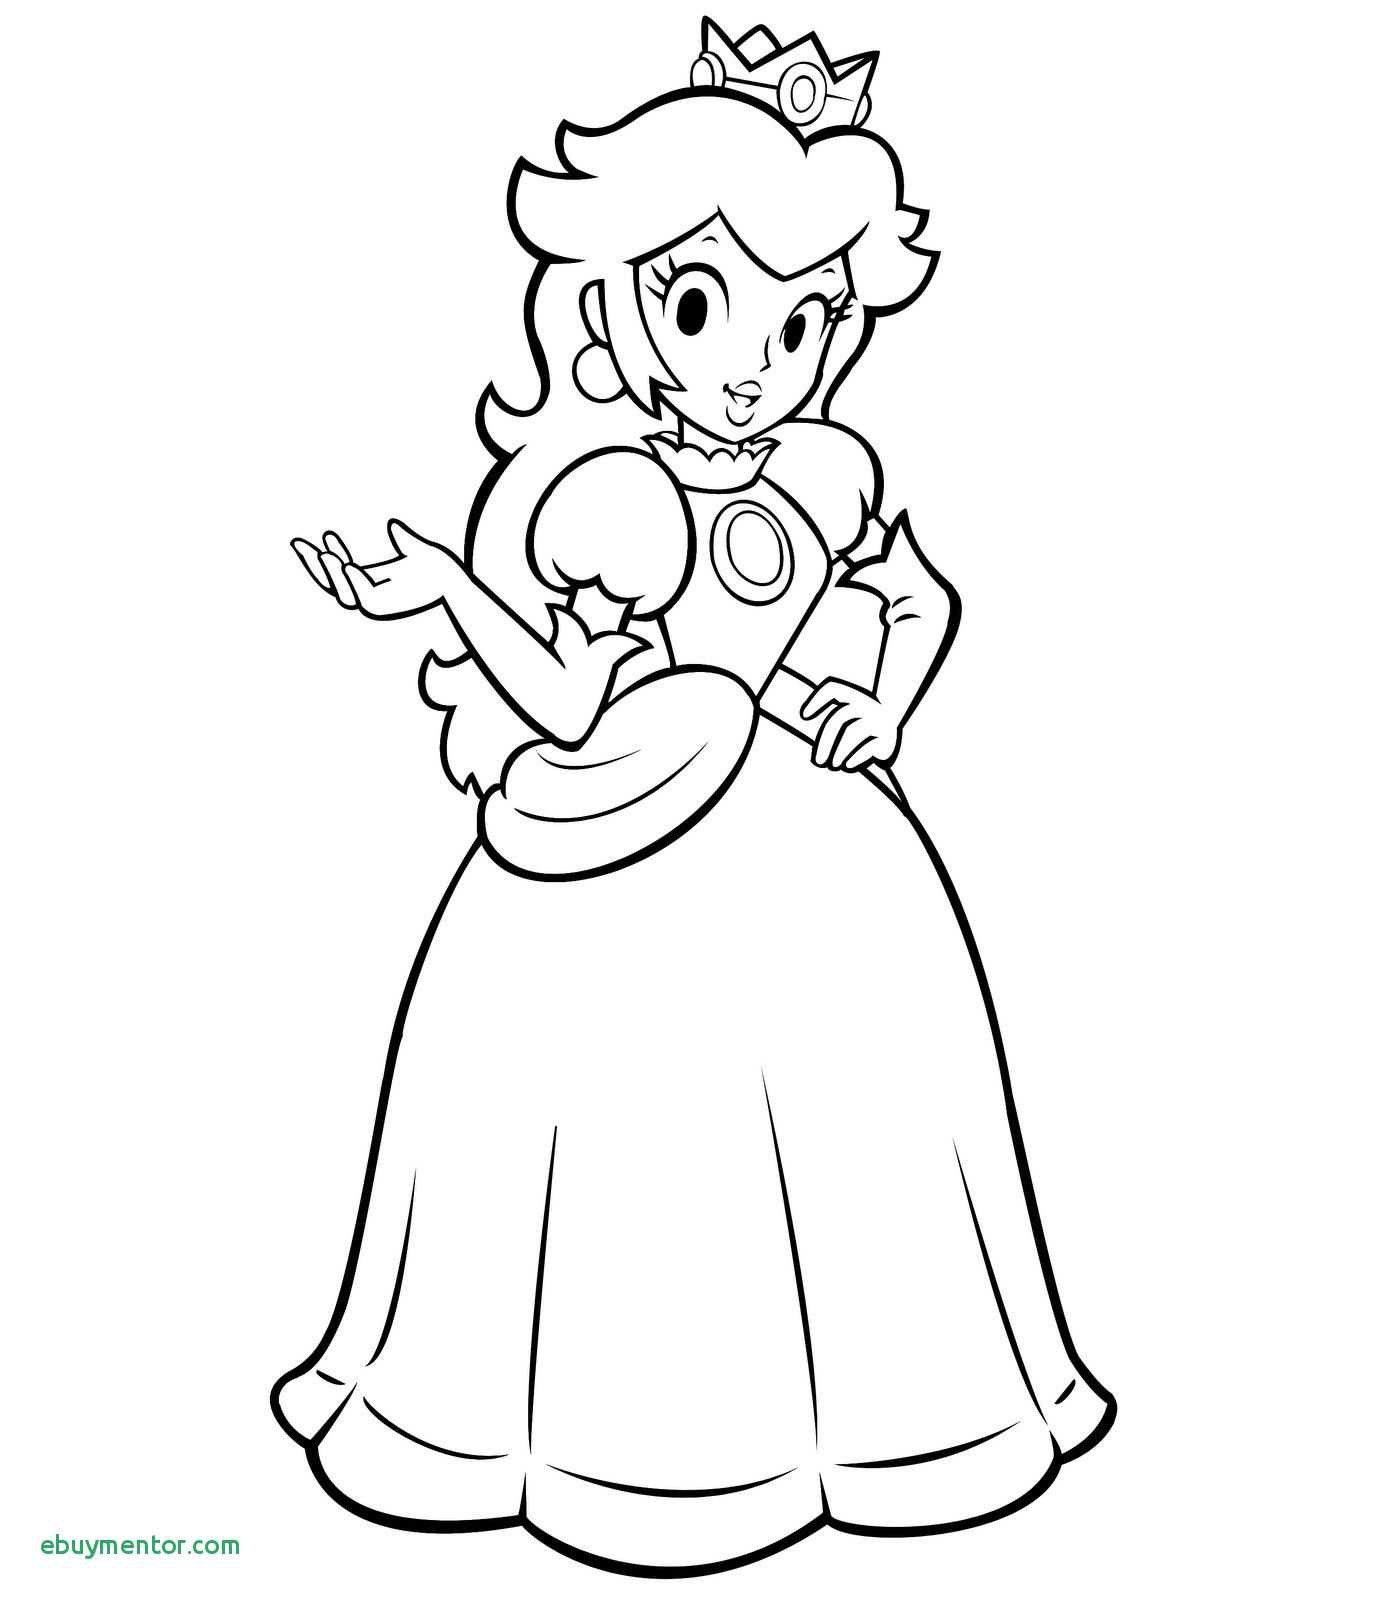 Princess Peach Coloring Pages Printable Mario Coloring Pages